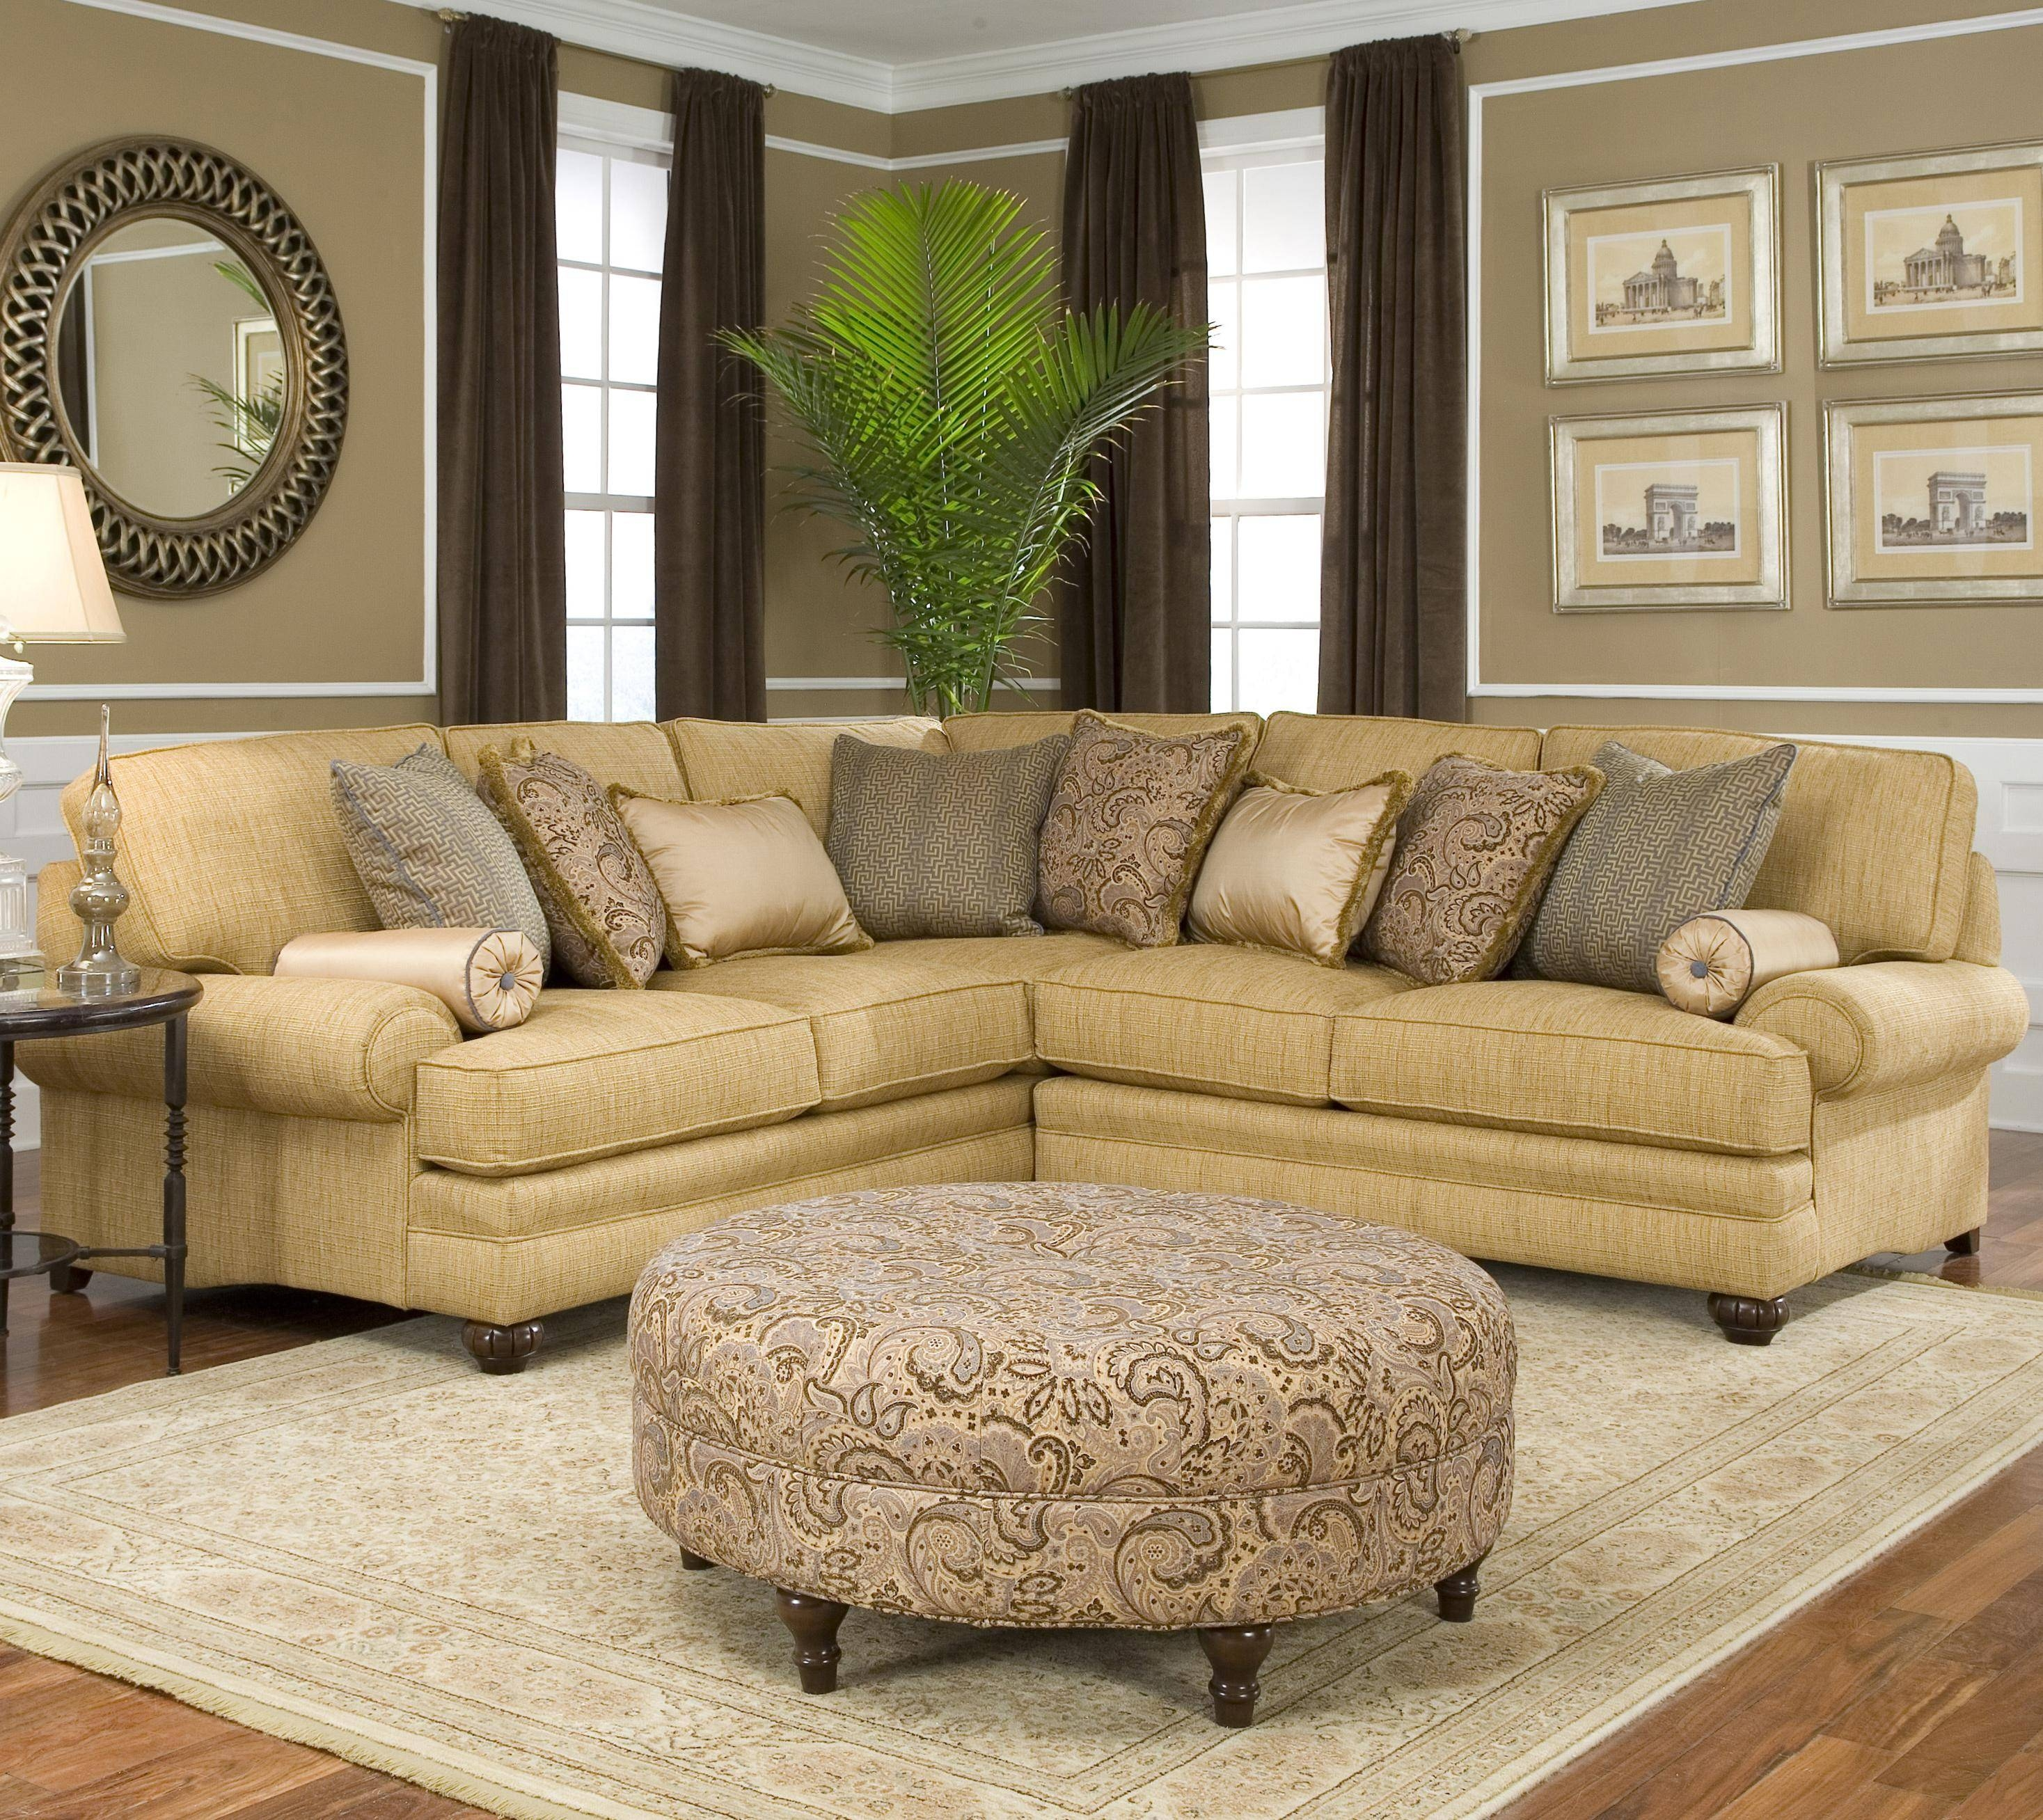 Traditional Sectional Sofas Living Room Furniture throughout Traditional Sectional Sofas Living Room Furniture (Image 22 of 25)